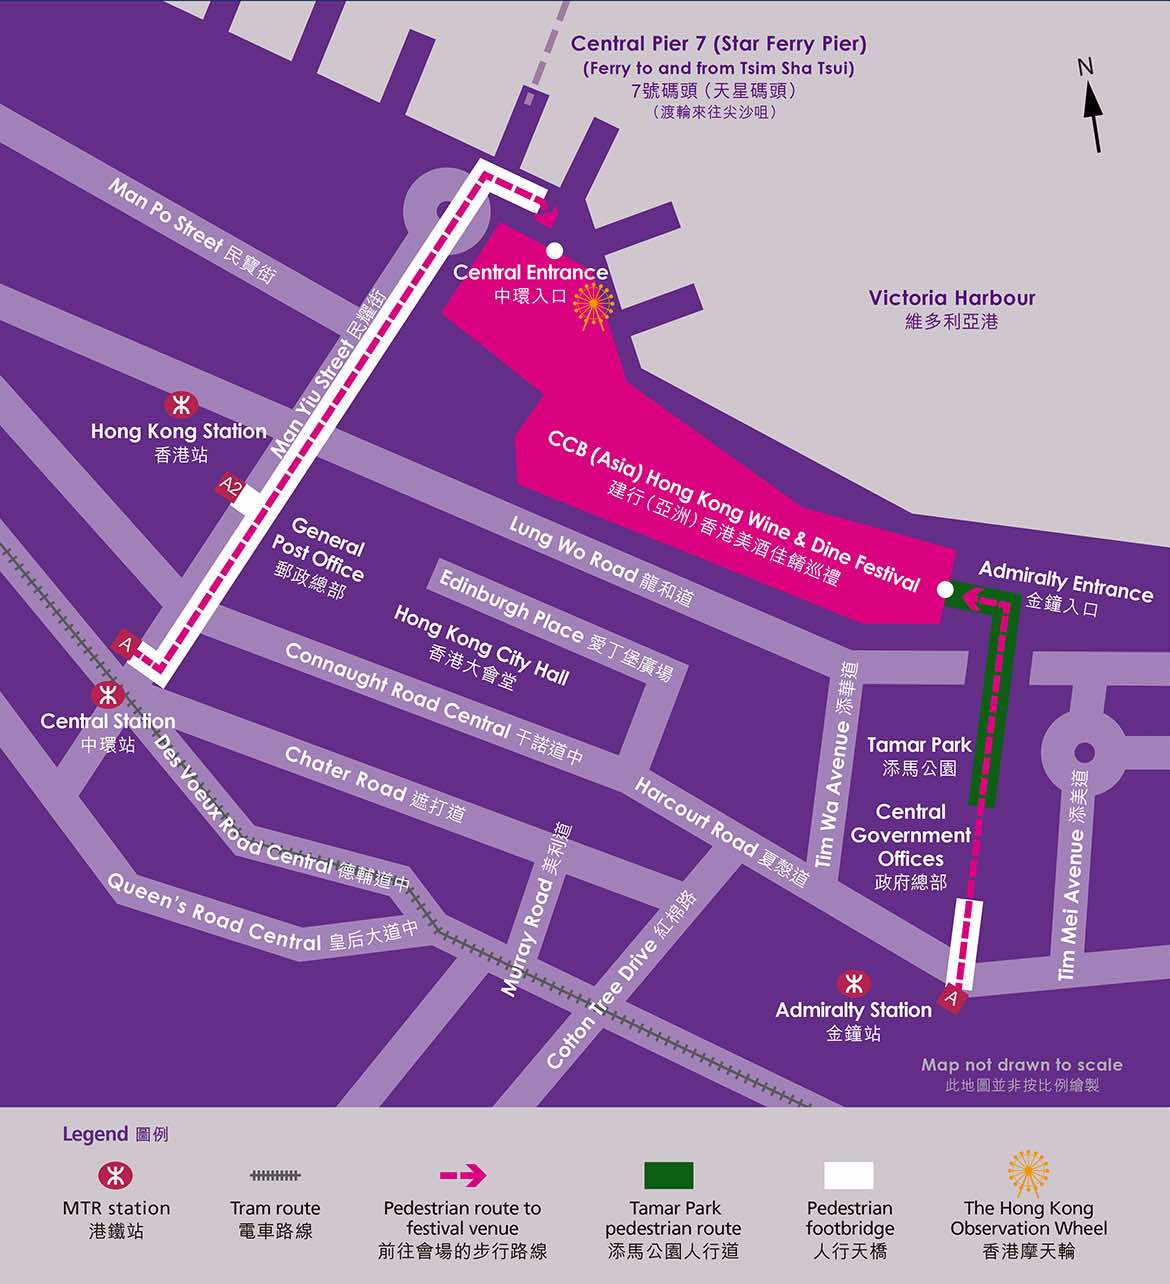 map-to-hong-kong-wine-dine-festival-2016-aspirantsg